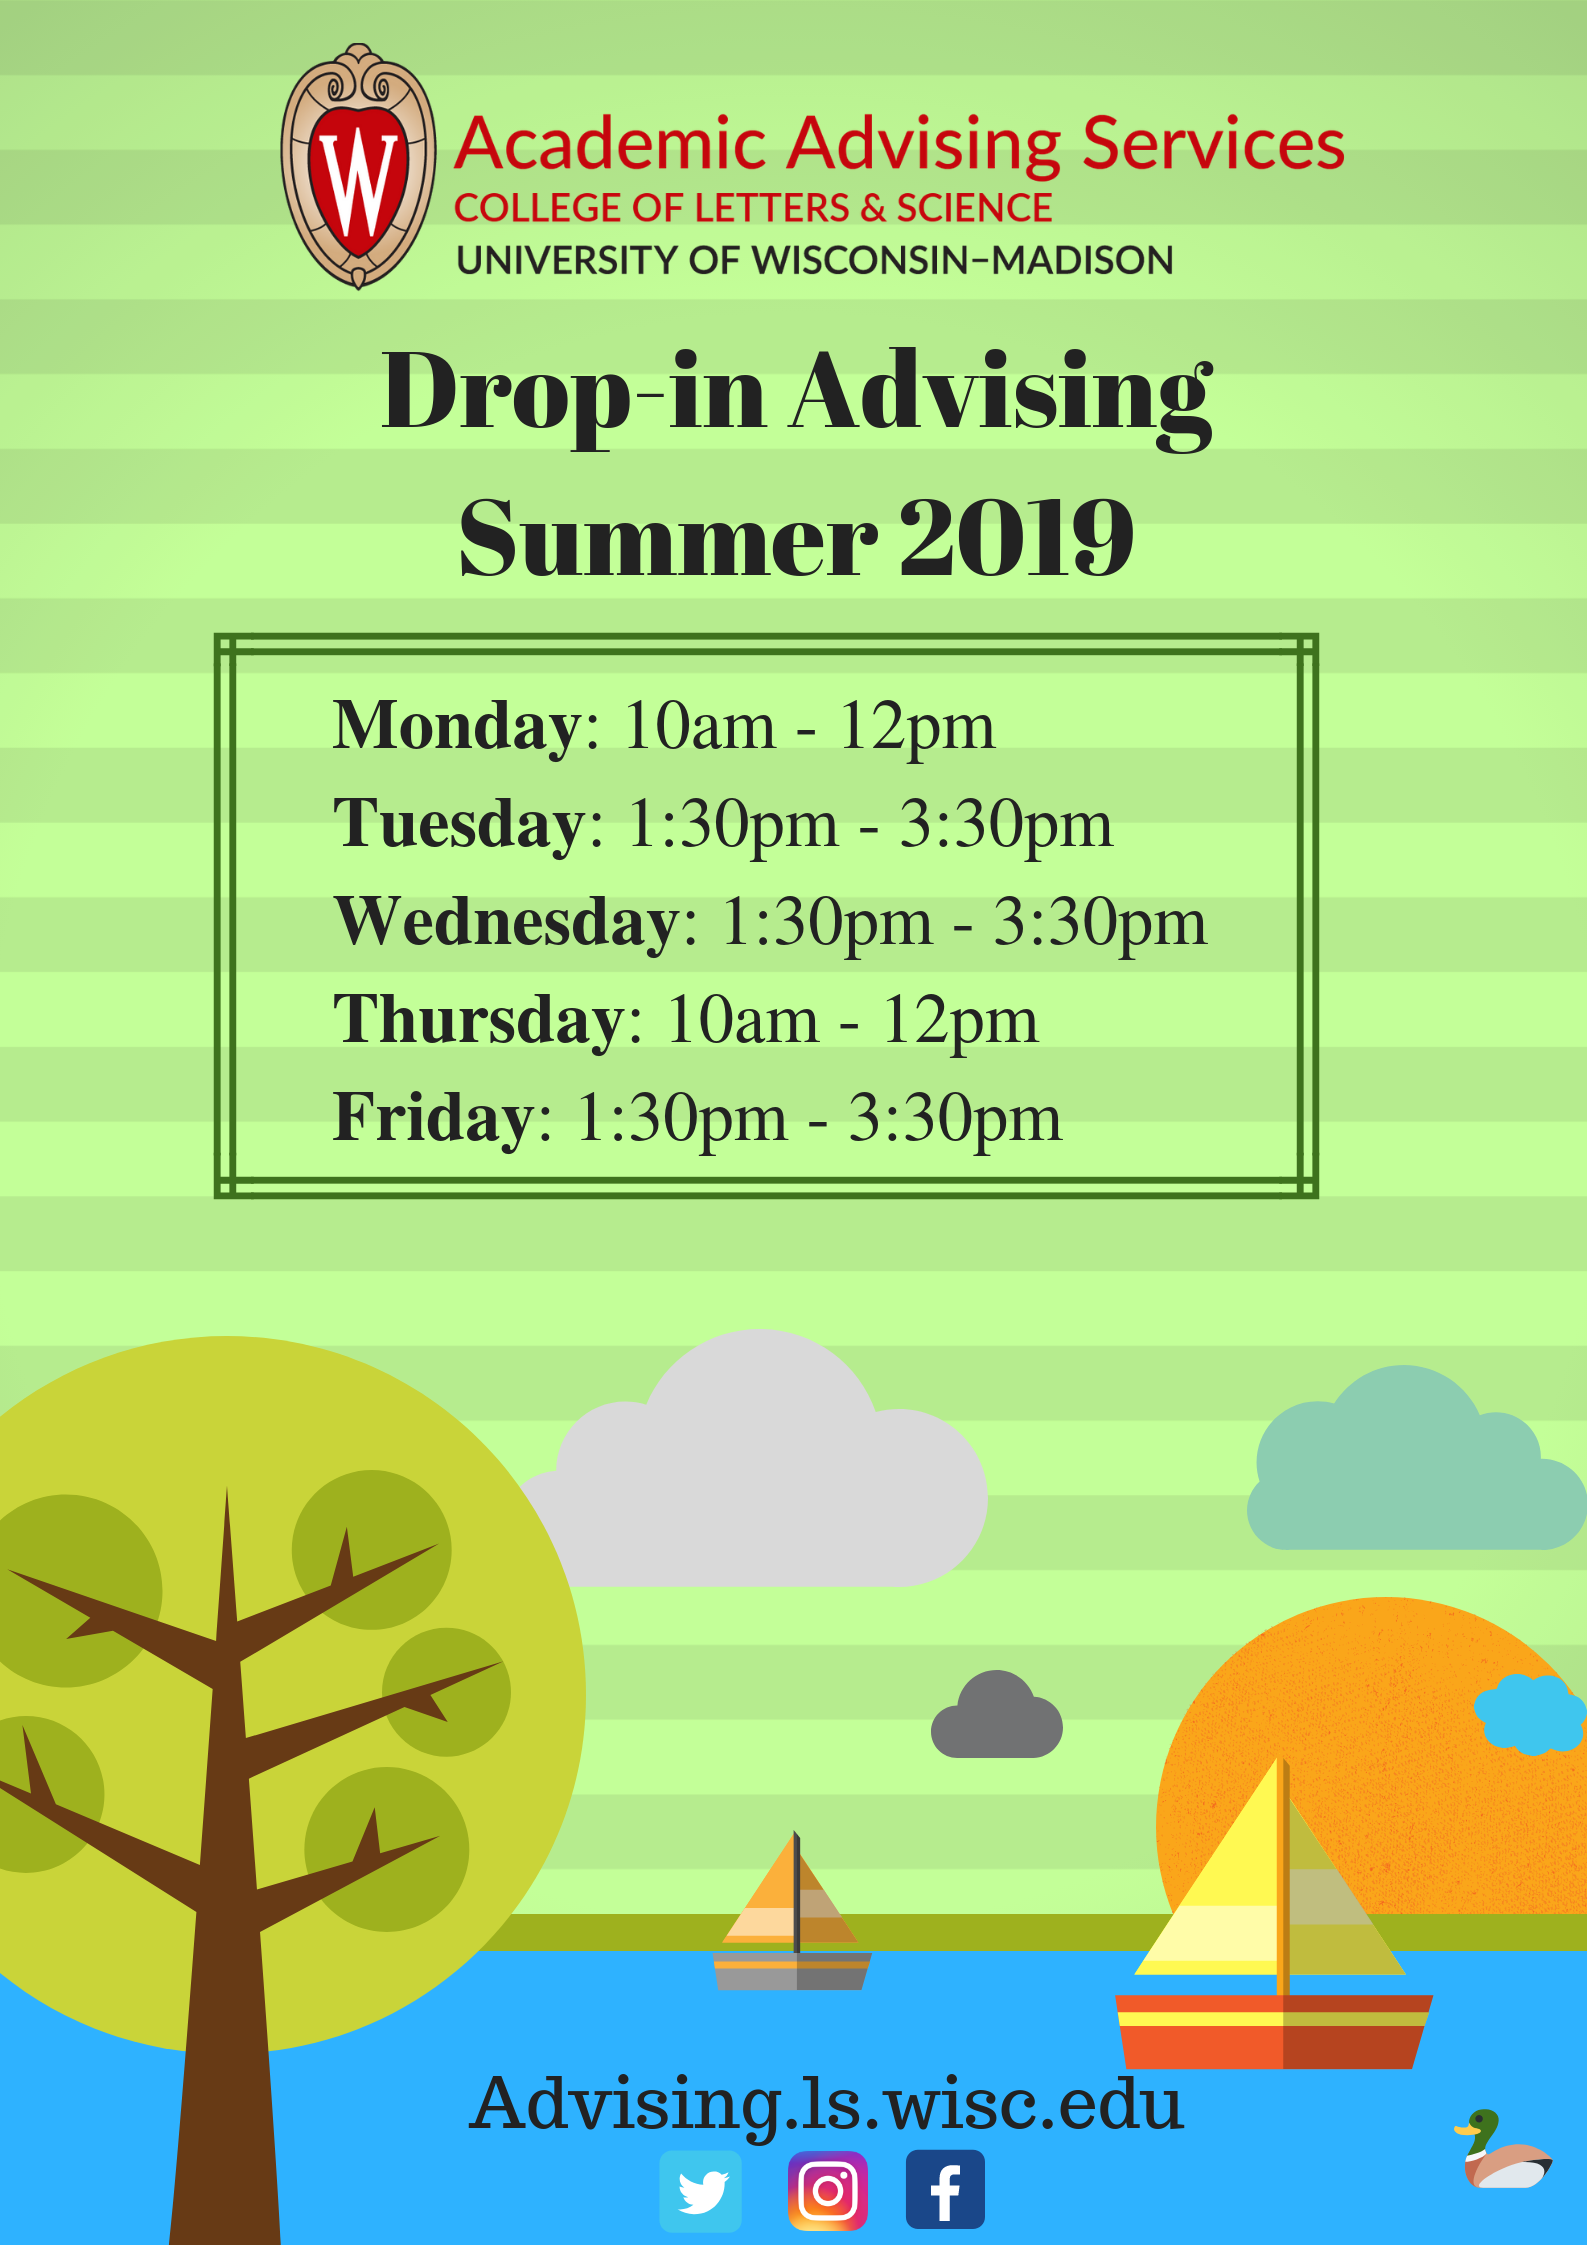 Drop-in Advising Summer 2019: Monday, 10am-12pm; Tuesday, 1:30-3:30pm; Wednesday, 1:30-3:30pm; Thursday, 10am-12pm; Friday, 1:30-3:30pm